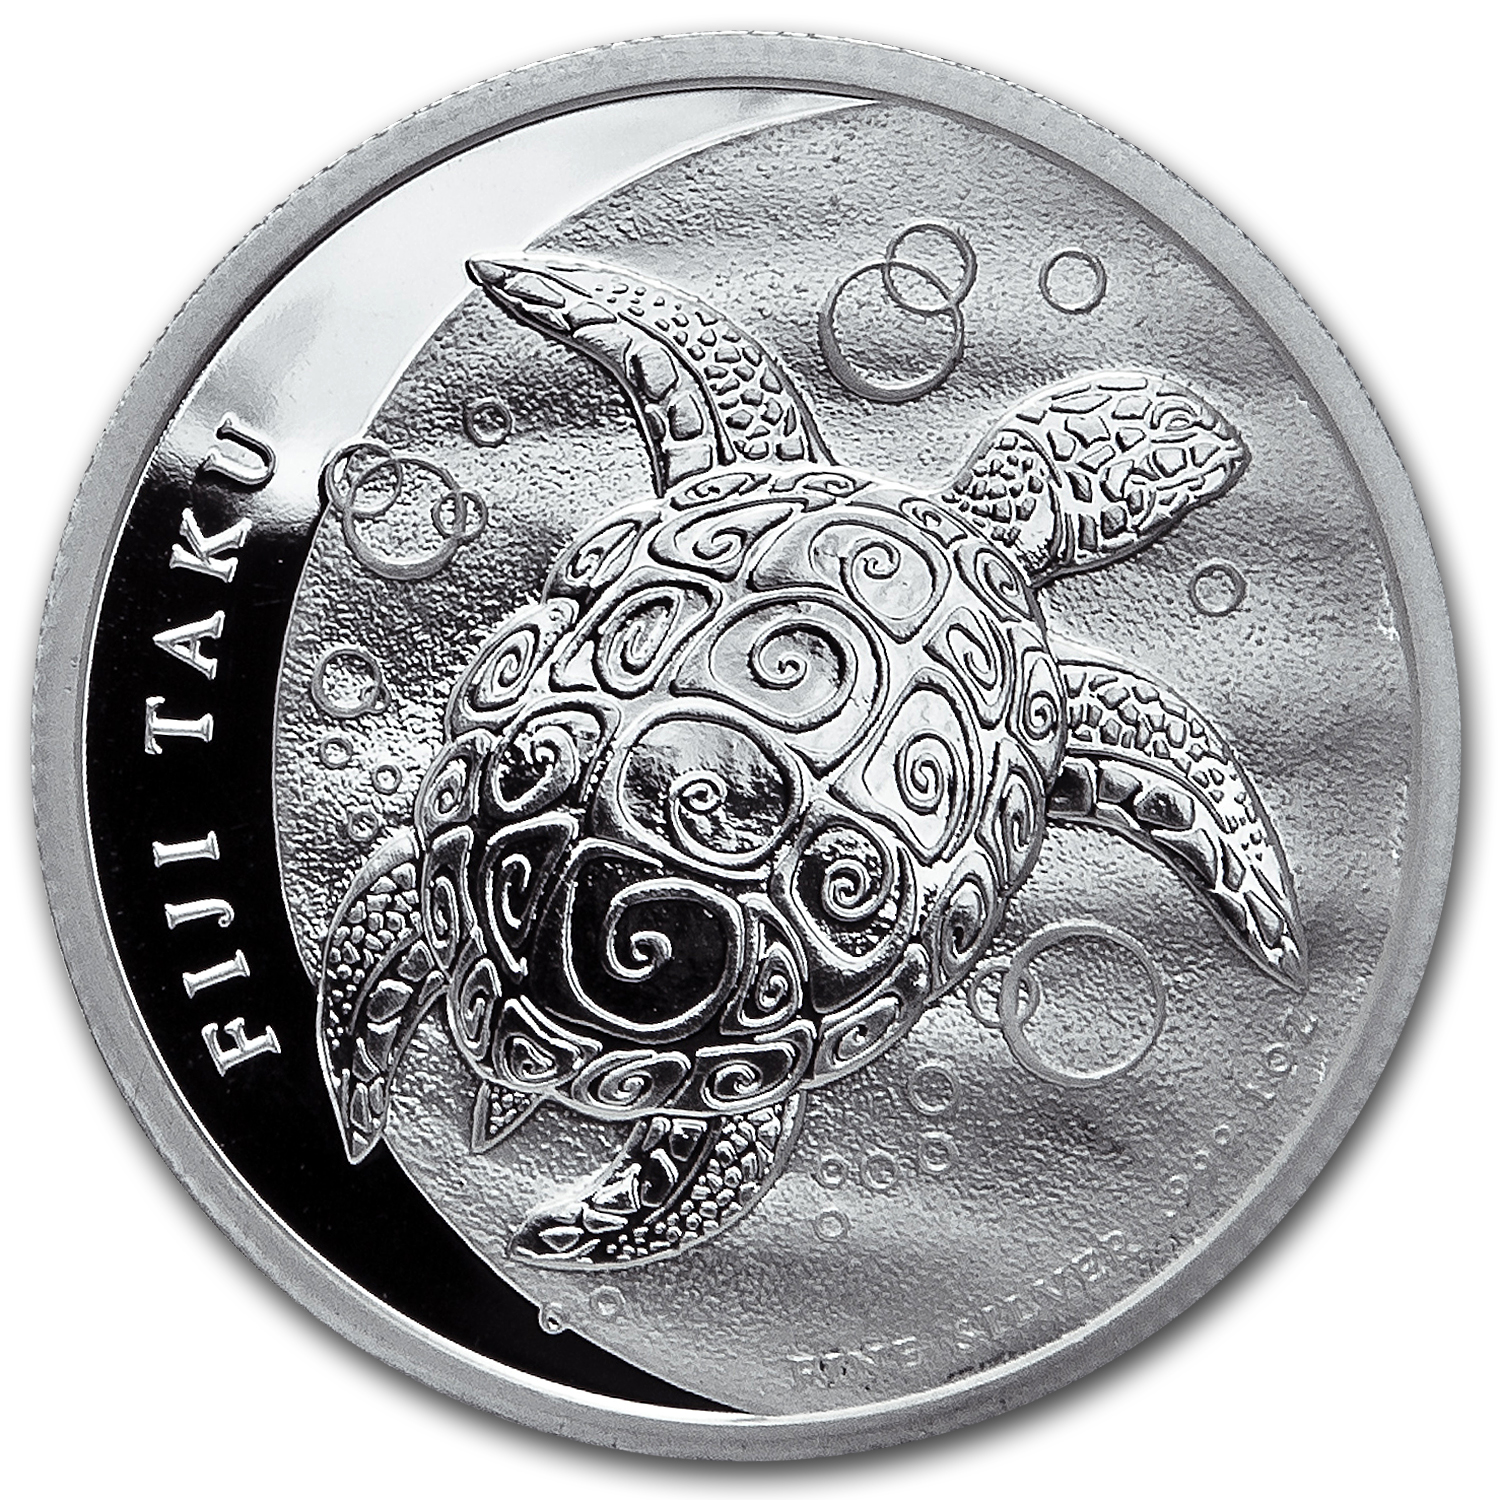 2013 1 oz Silver New Zealand Mint $2 Fiji Taku BU